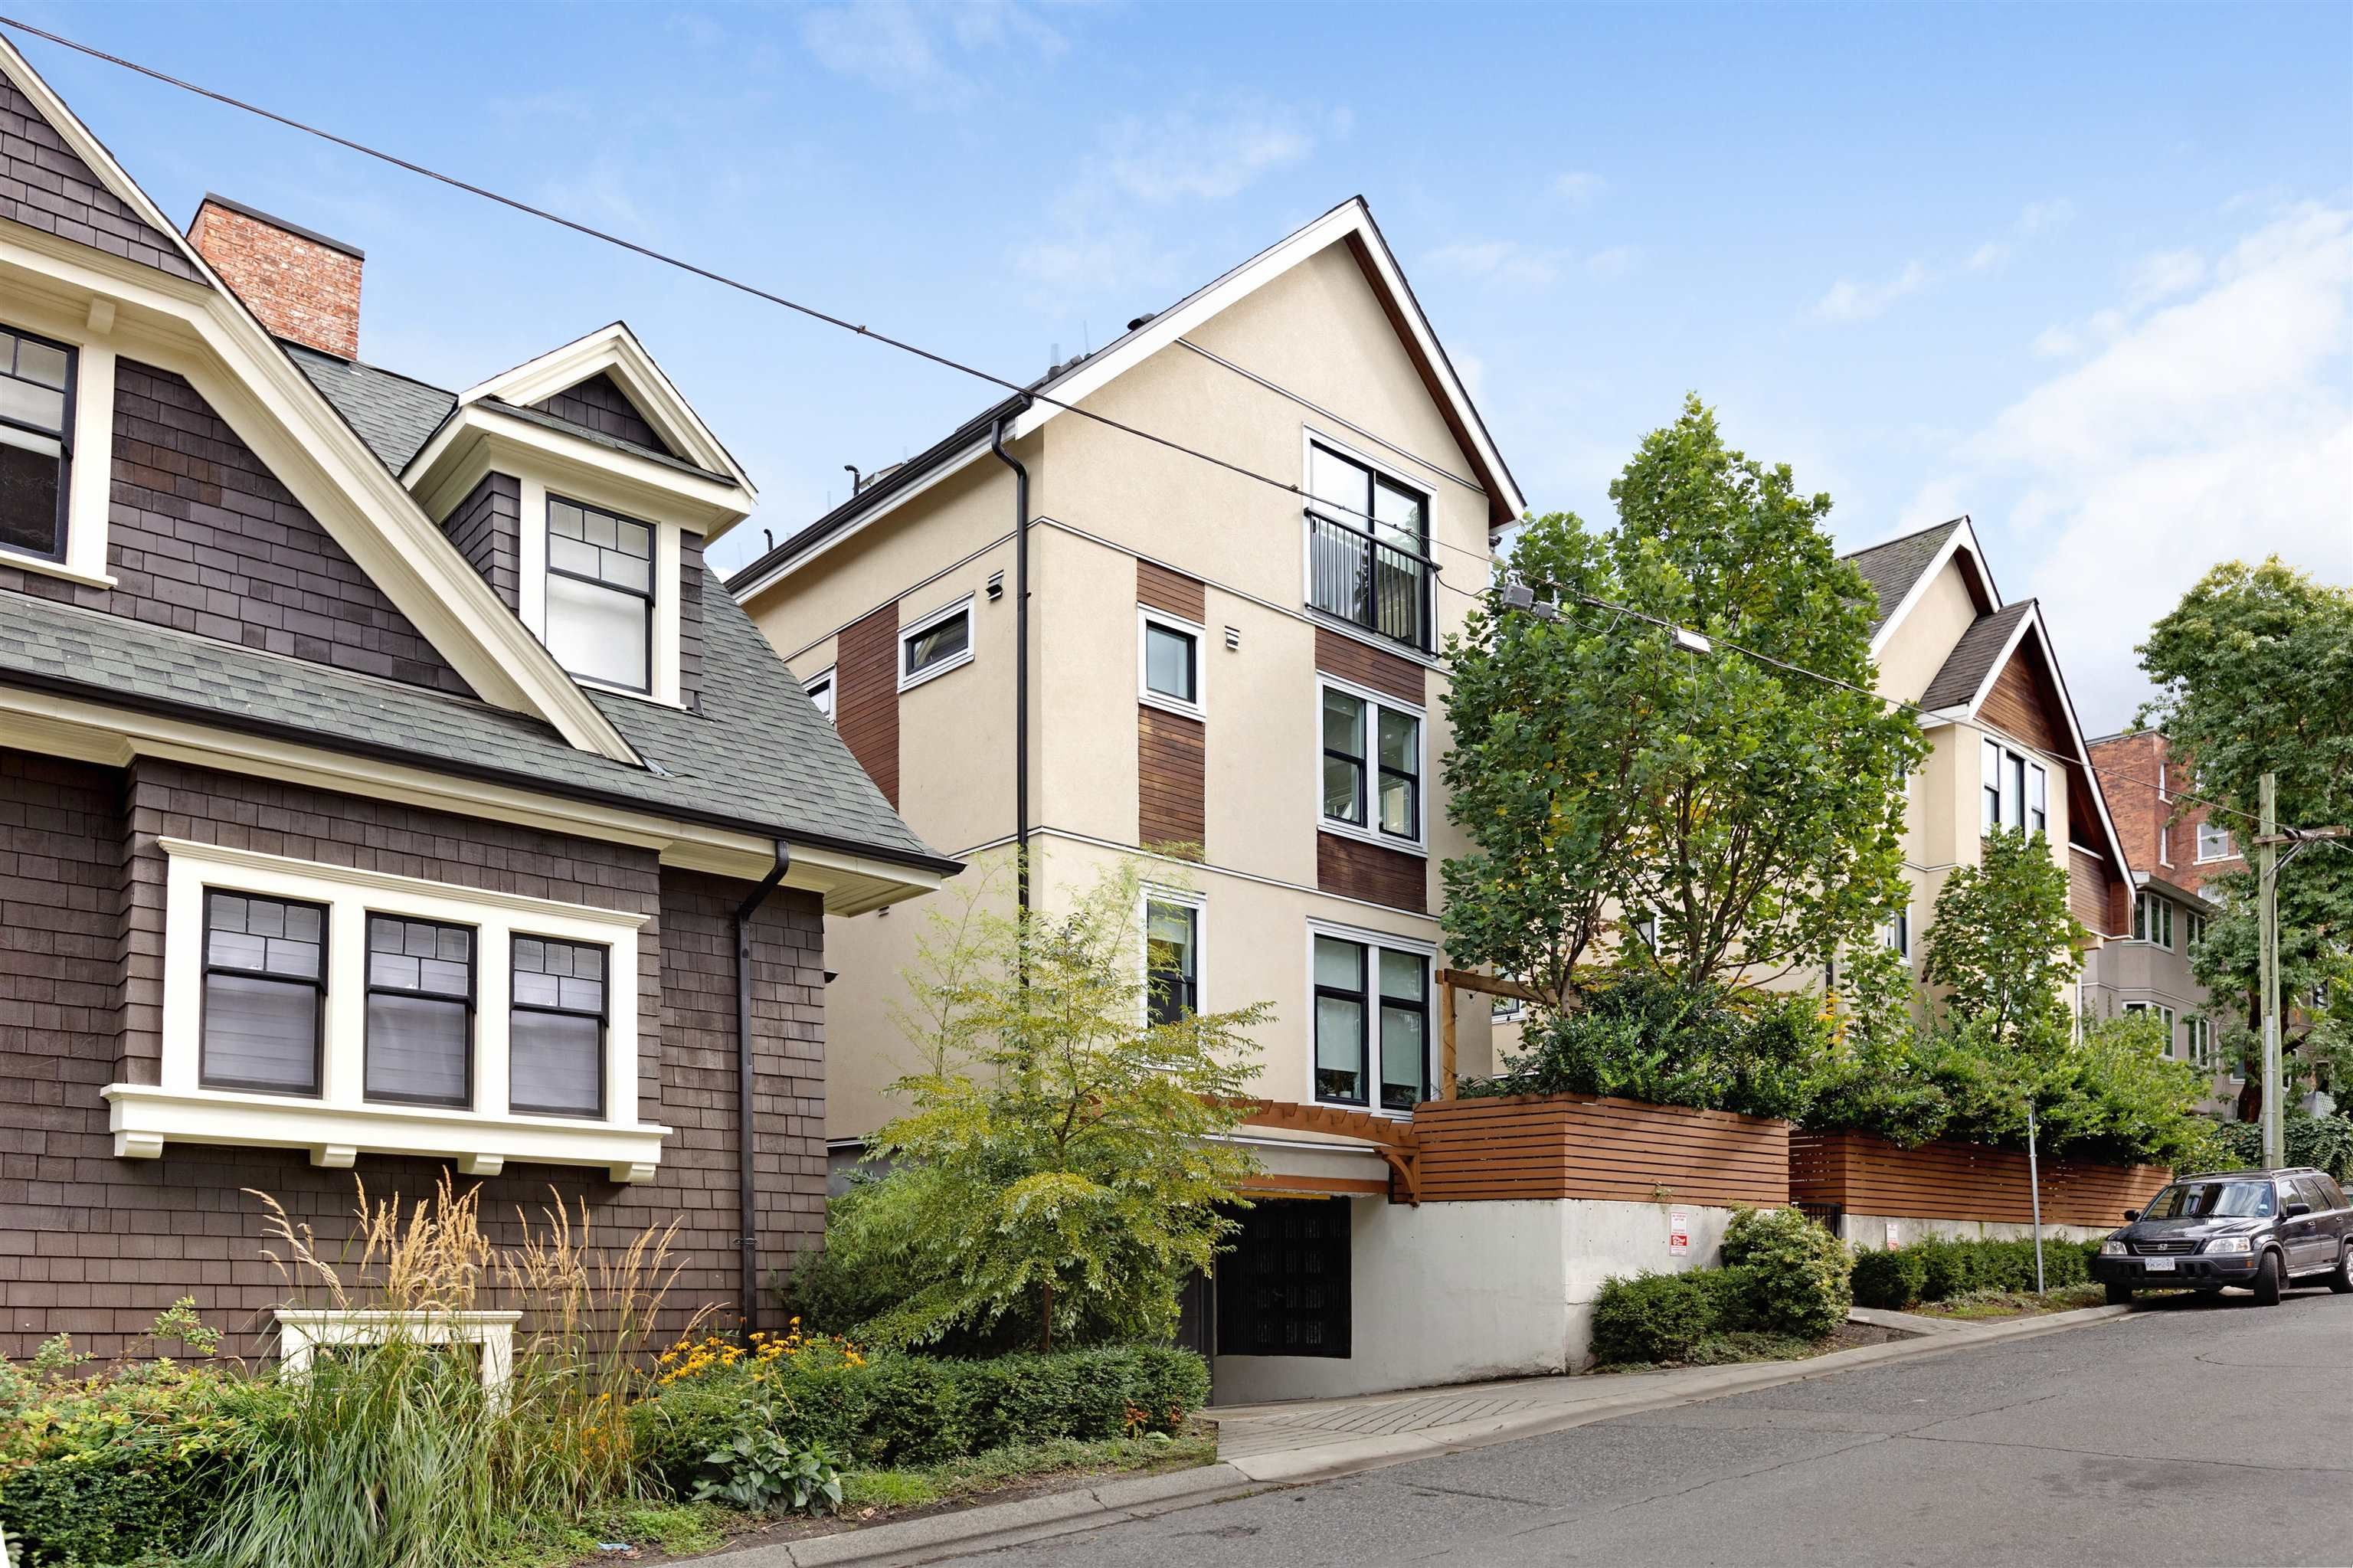 Main Photo: 1080 NICOLA STREET in Vancouver: West End VW Townhouse for sale (Vancouver West)  : MLS®# R2622492